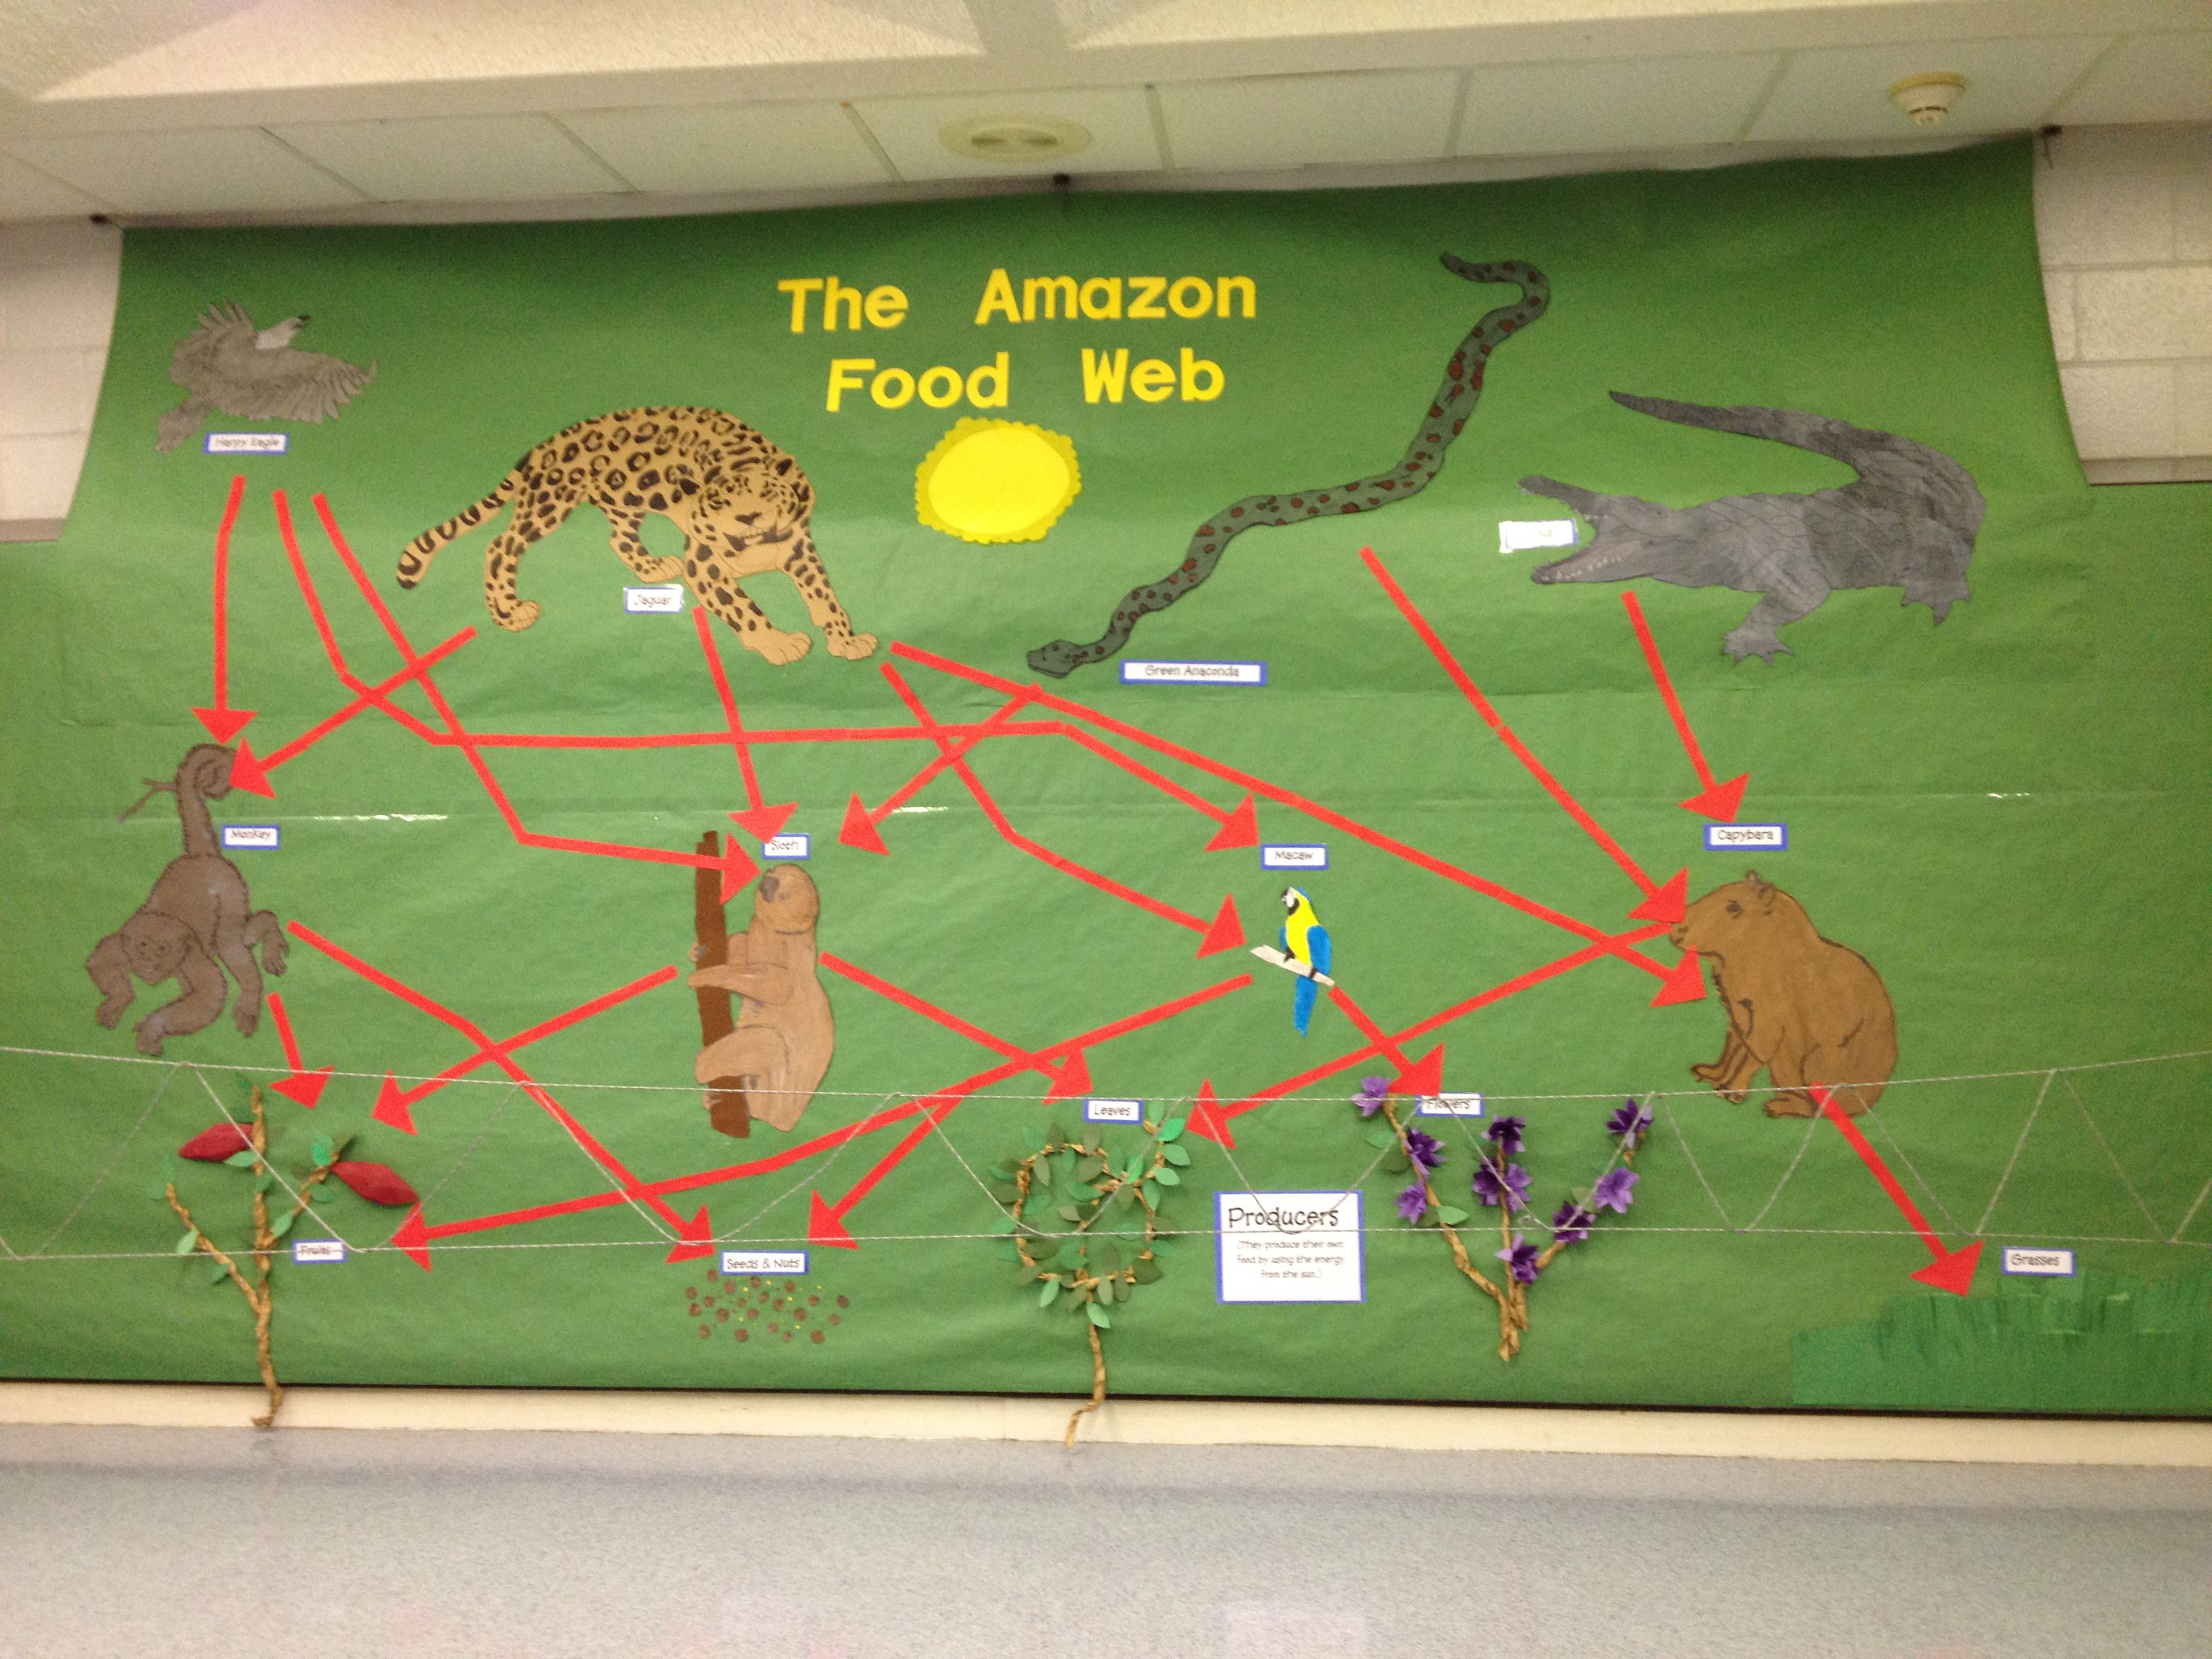 Amazon Rainforest displaying the food web. Part of a